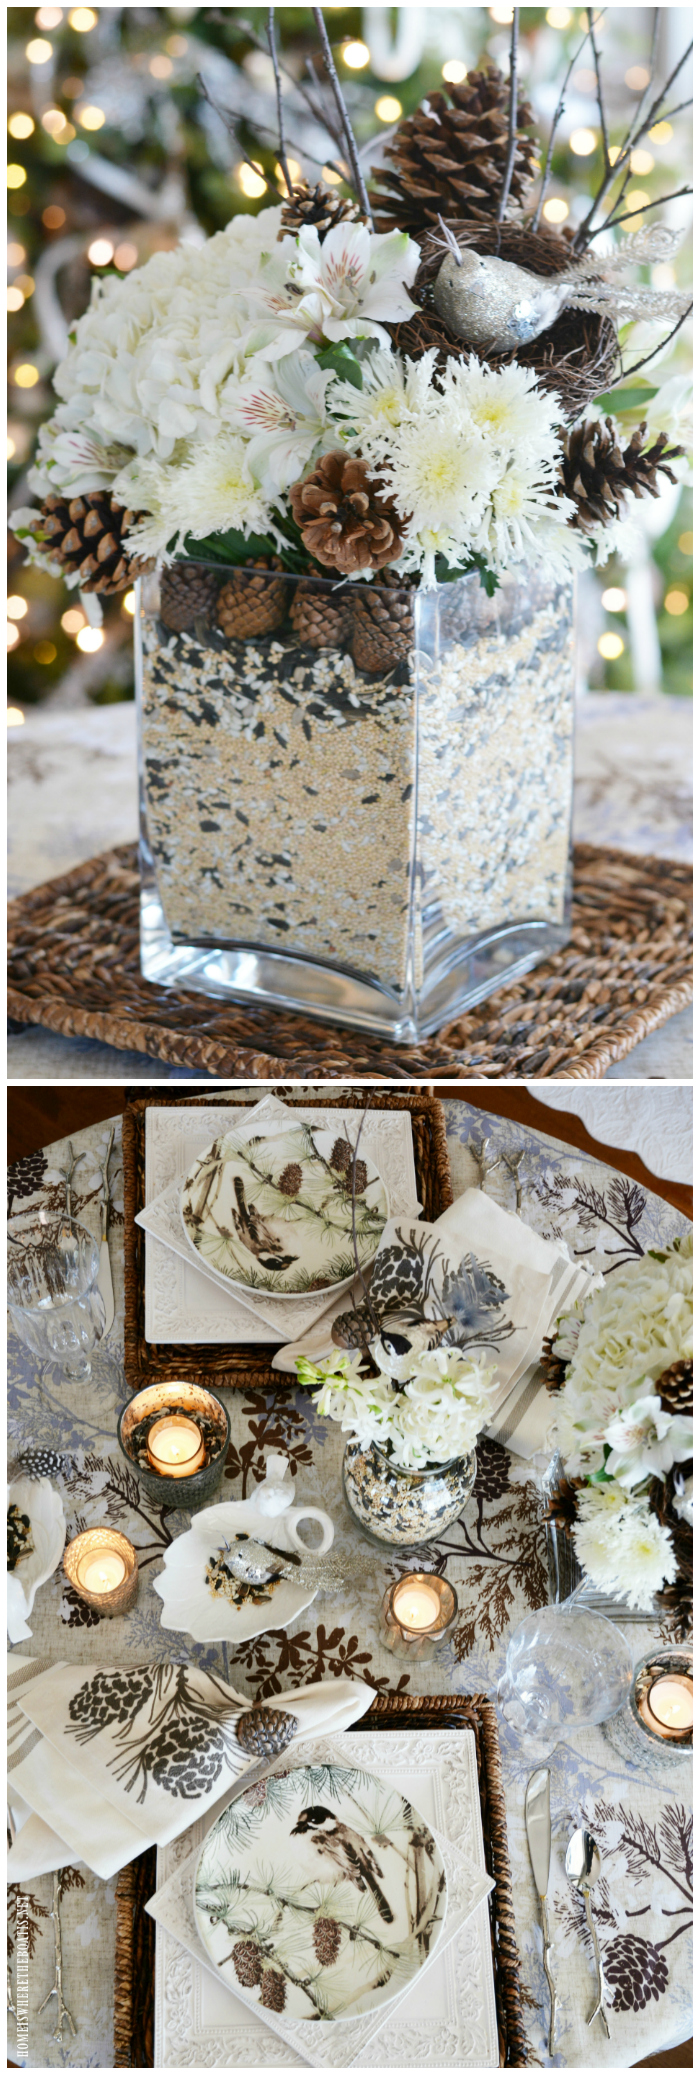 Create a 'Winter Nesting' Centerpiece for your table. This nesting-vase method is a decorative and easy way to hide your floral stems when using a glass vase for a flower arrangement. Customize your arrangement with the 'filler' or decorative material of your choice to match your decor or tablesetting.